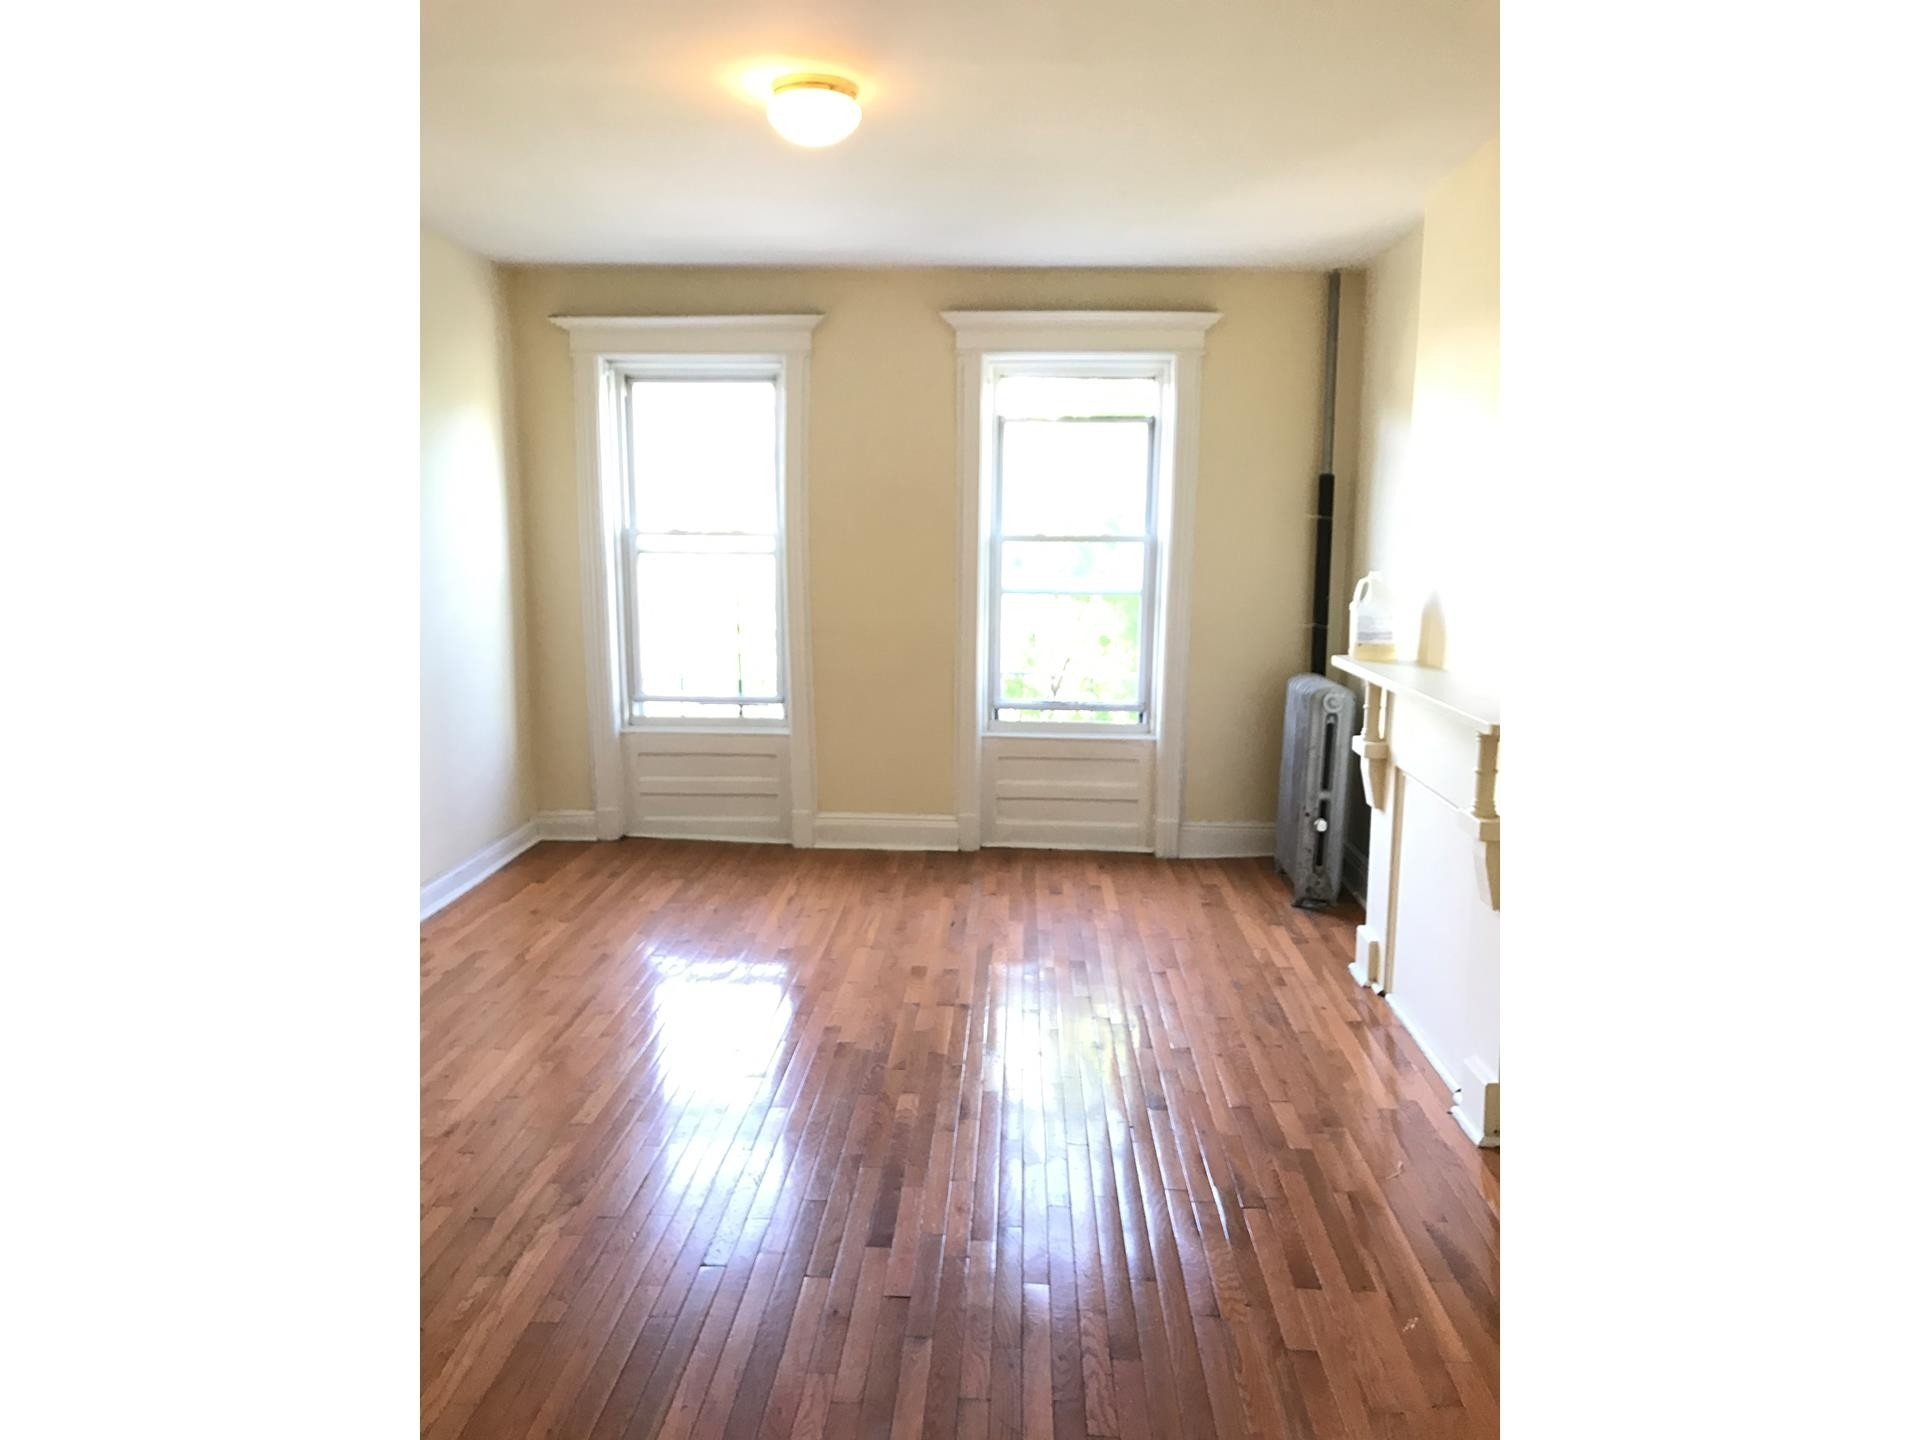 3. 建於1288 Sterling Pl, Crown Heights, Brooklyn, NY